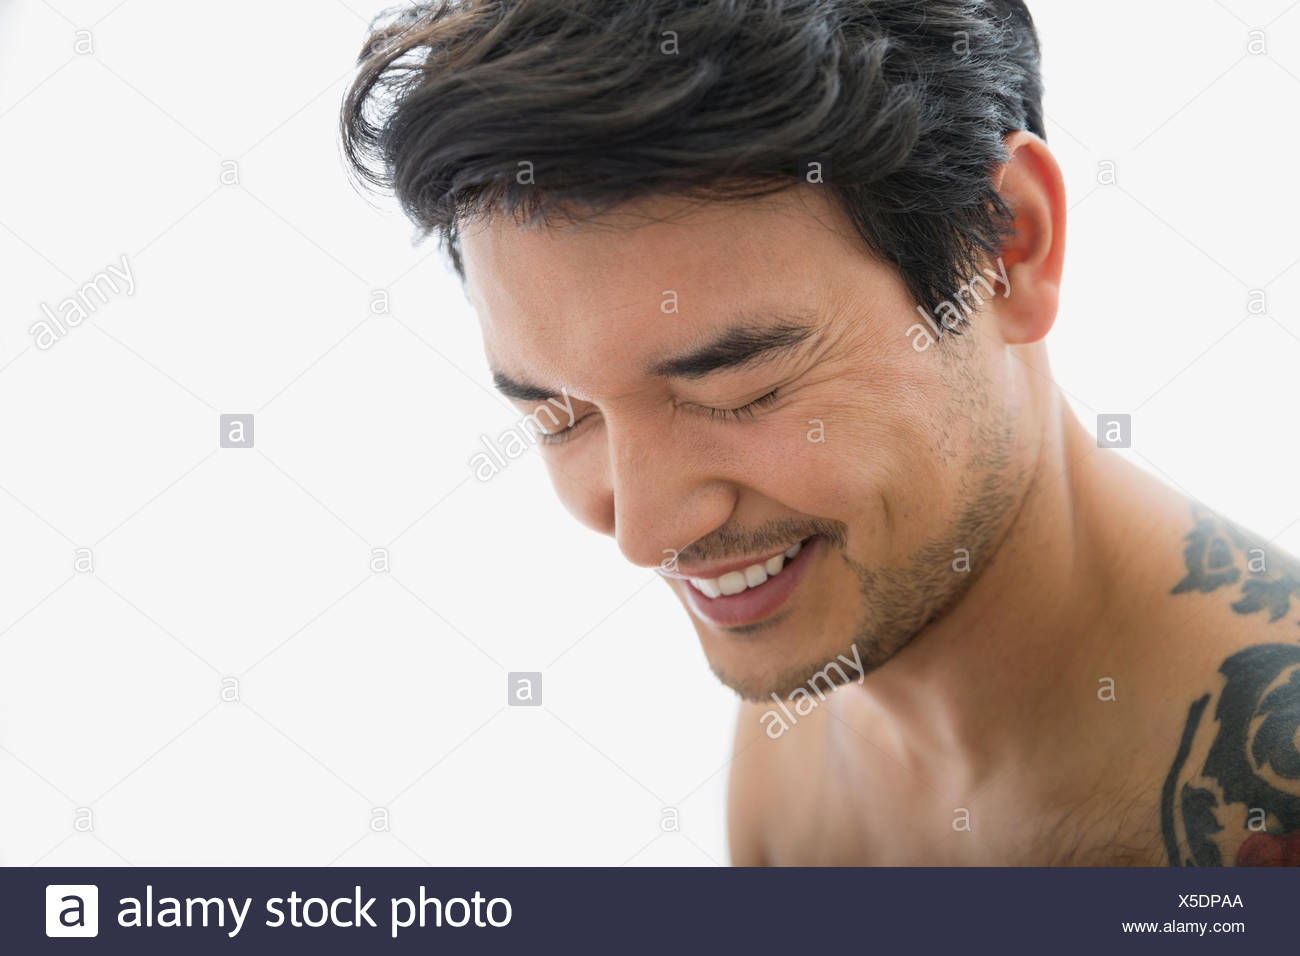 Bare chested man laughing with eyes closed - Stock Image